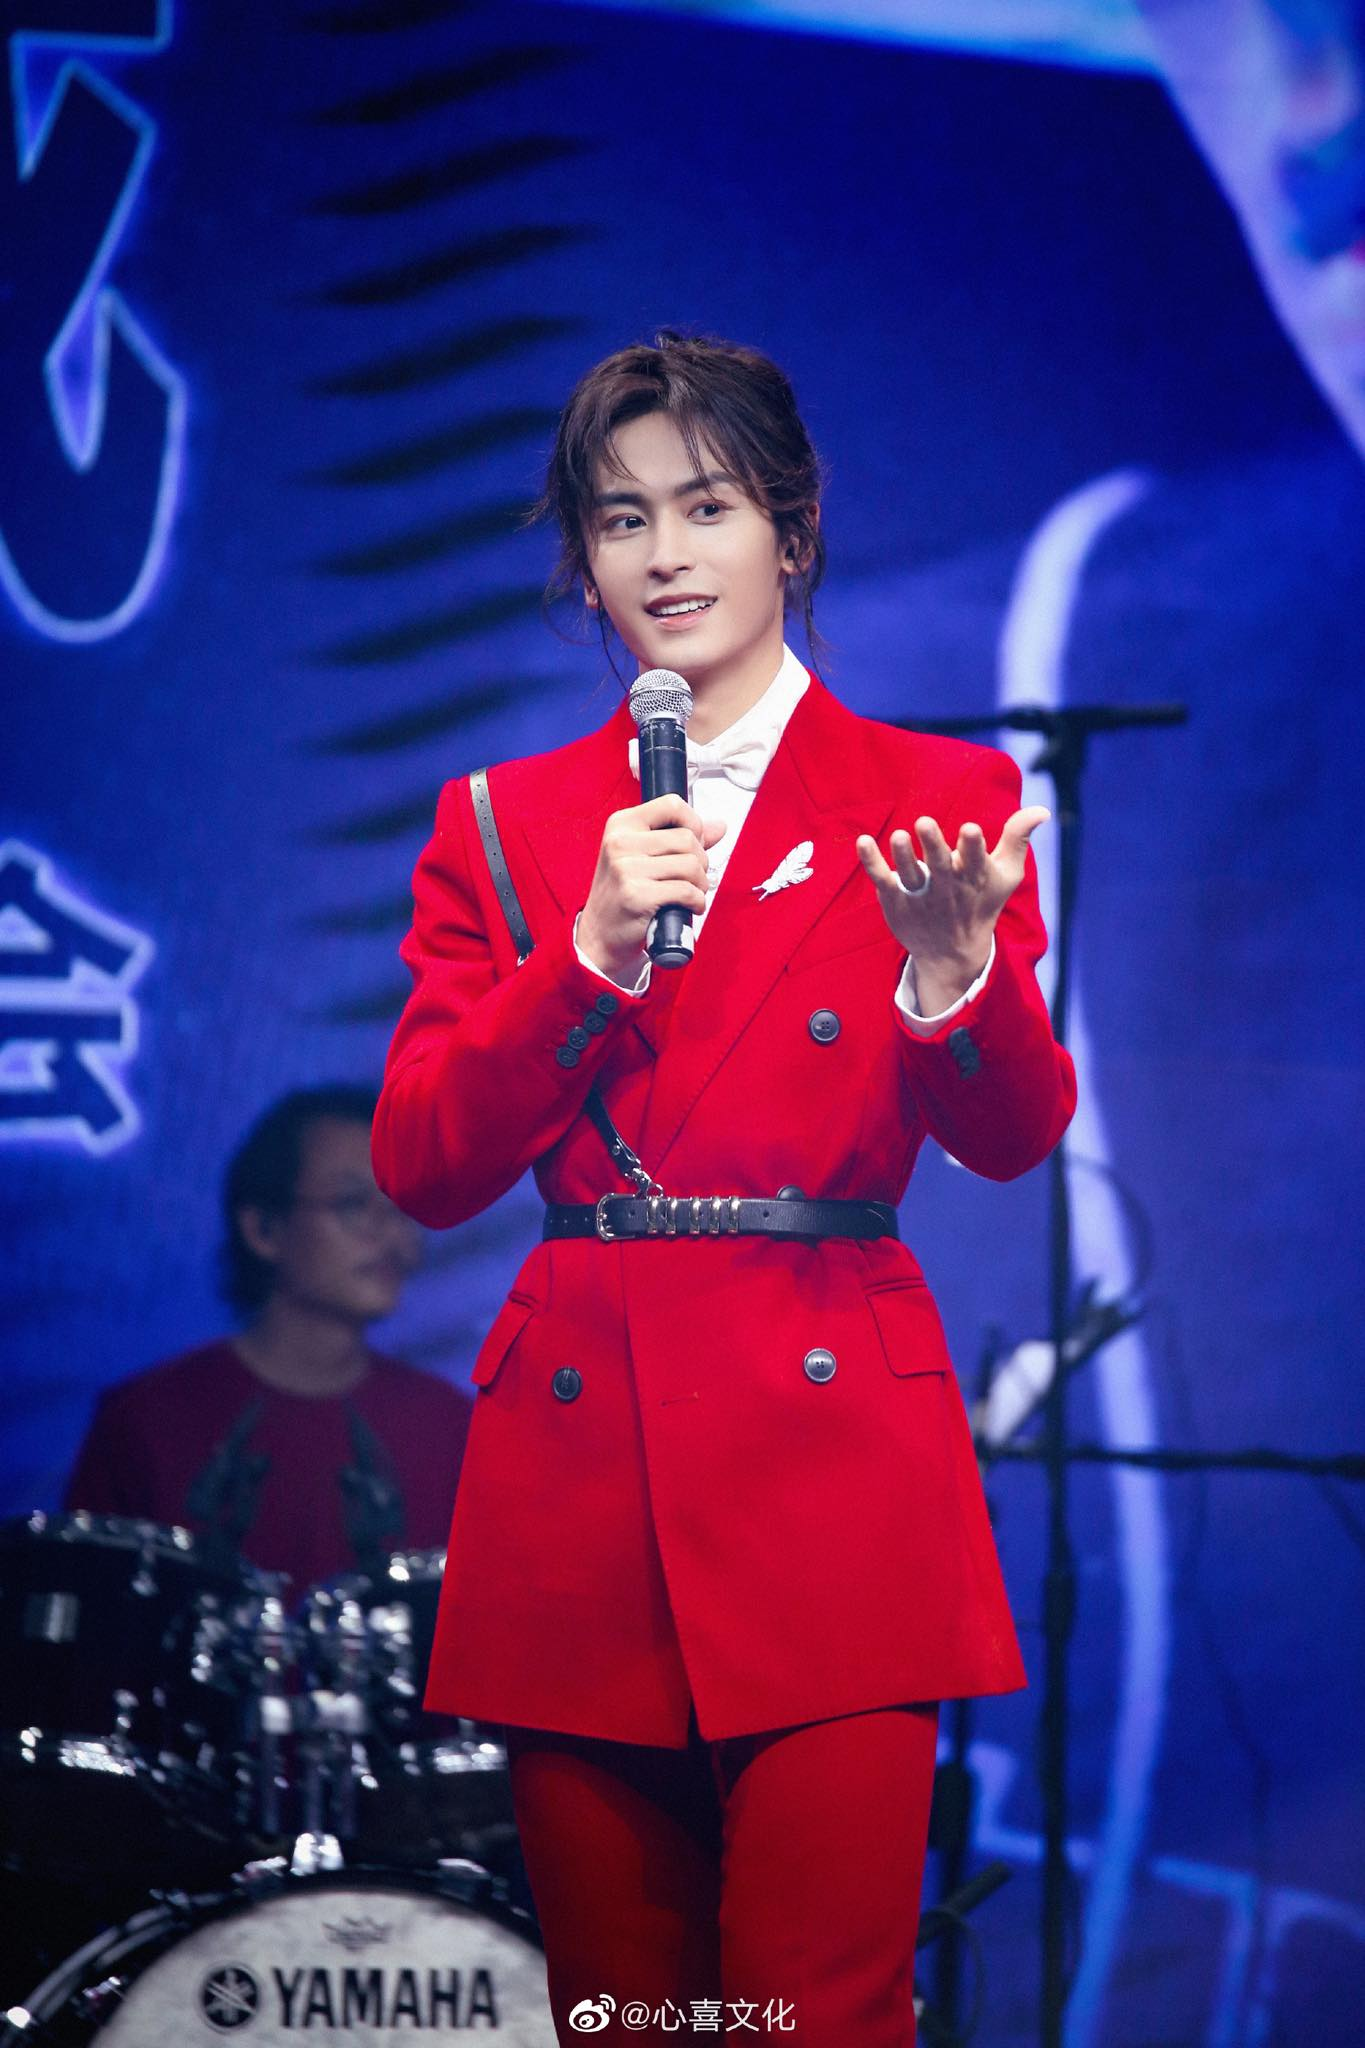 Truong Triet Han will hold a concert in July, Cnet is bored 'let's be an actor' 3